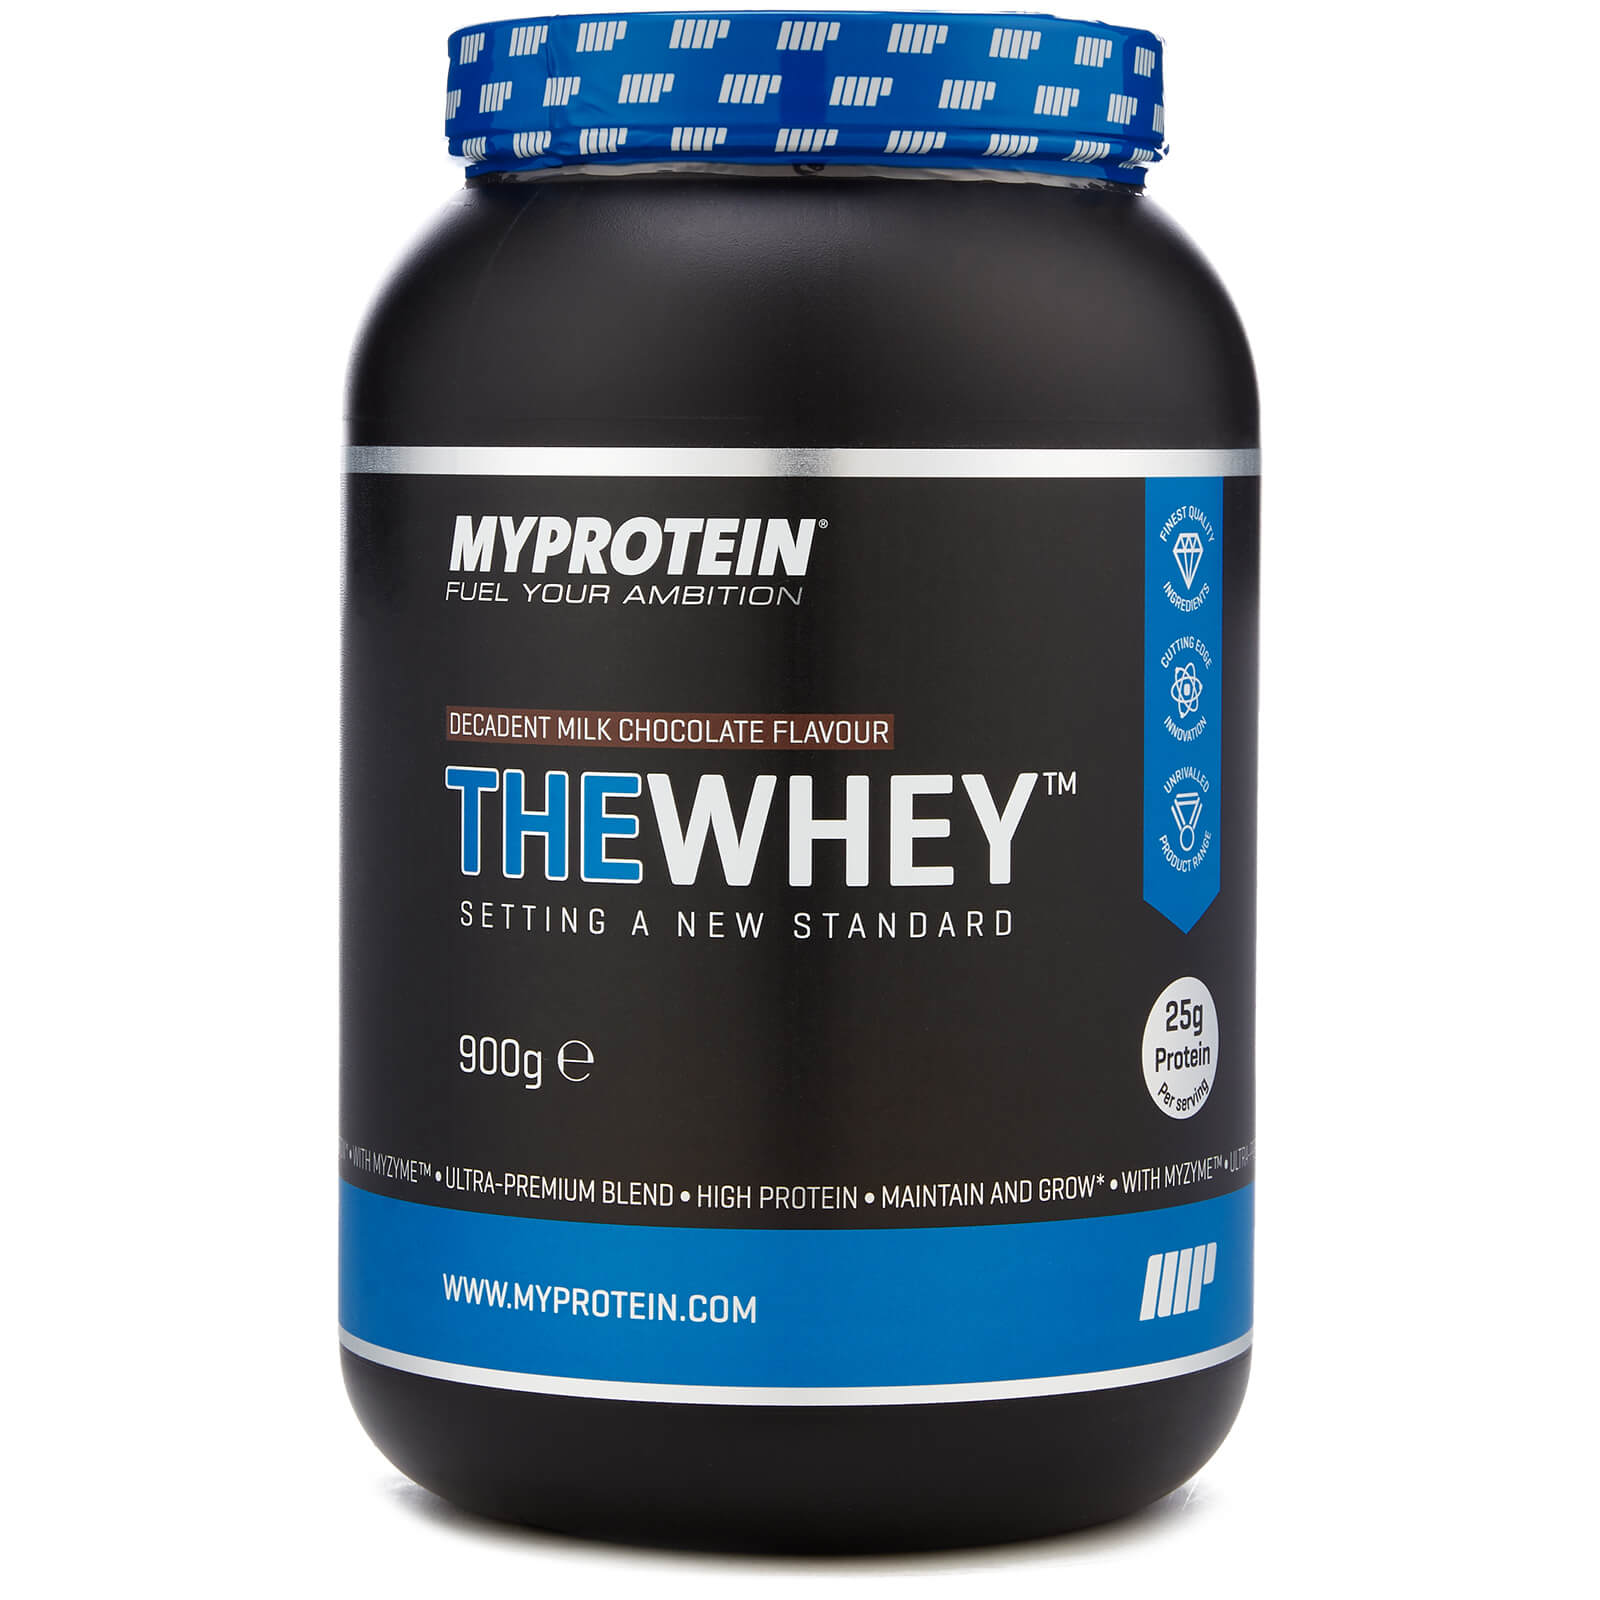 THEWHEY - Decadent Milk Chocolate - 900g